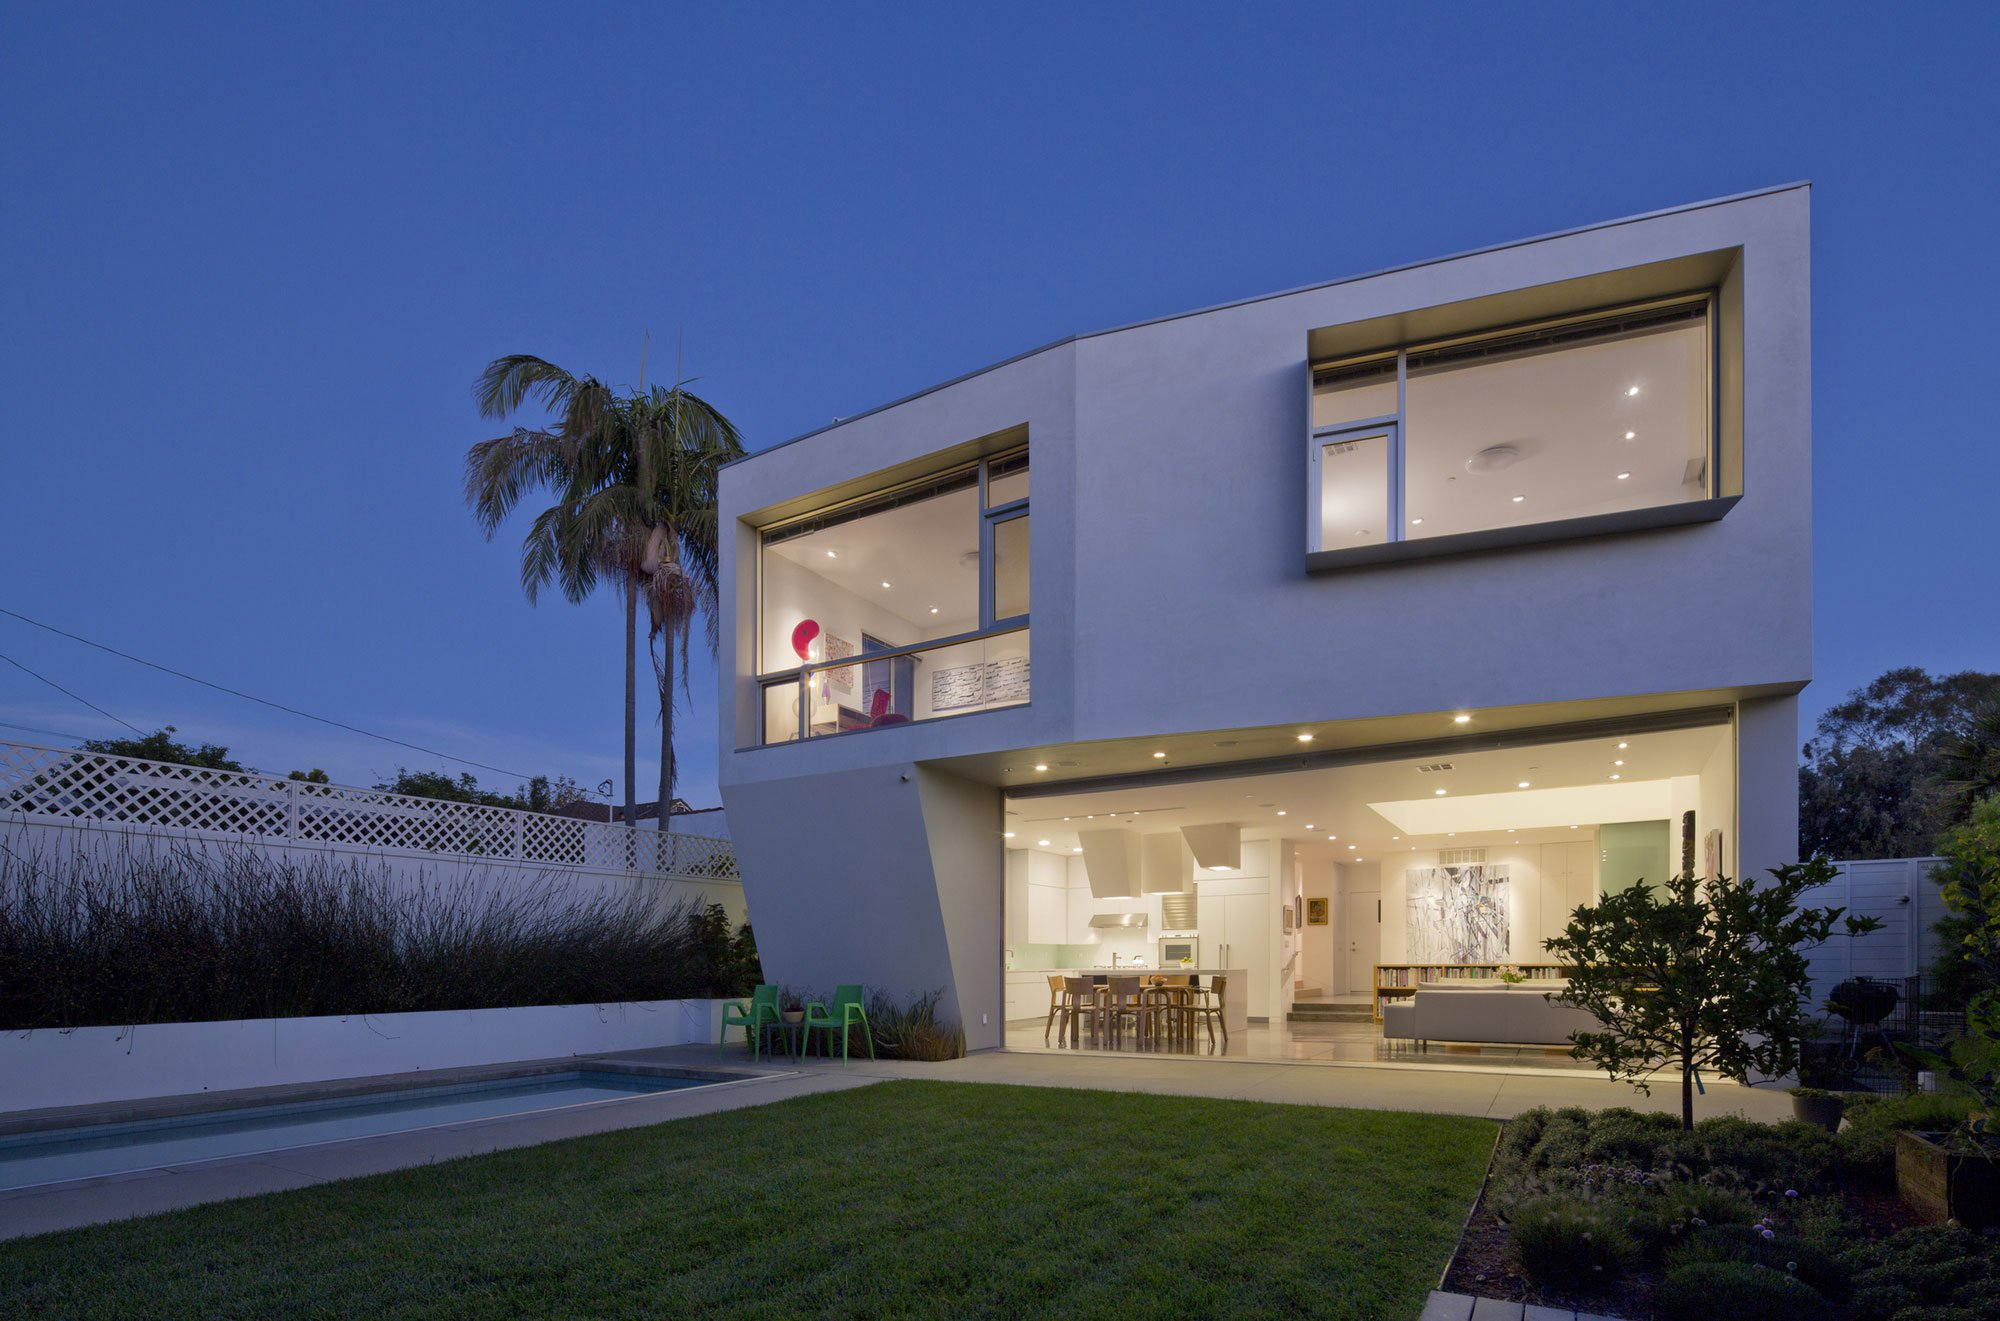 Holleb residence by john friedman alice kimm architects for Casa modelo americano